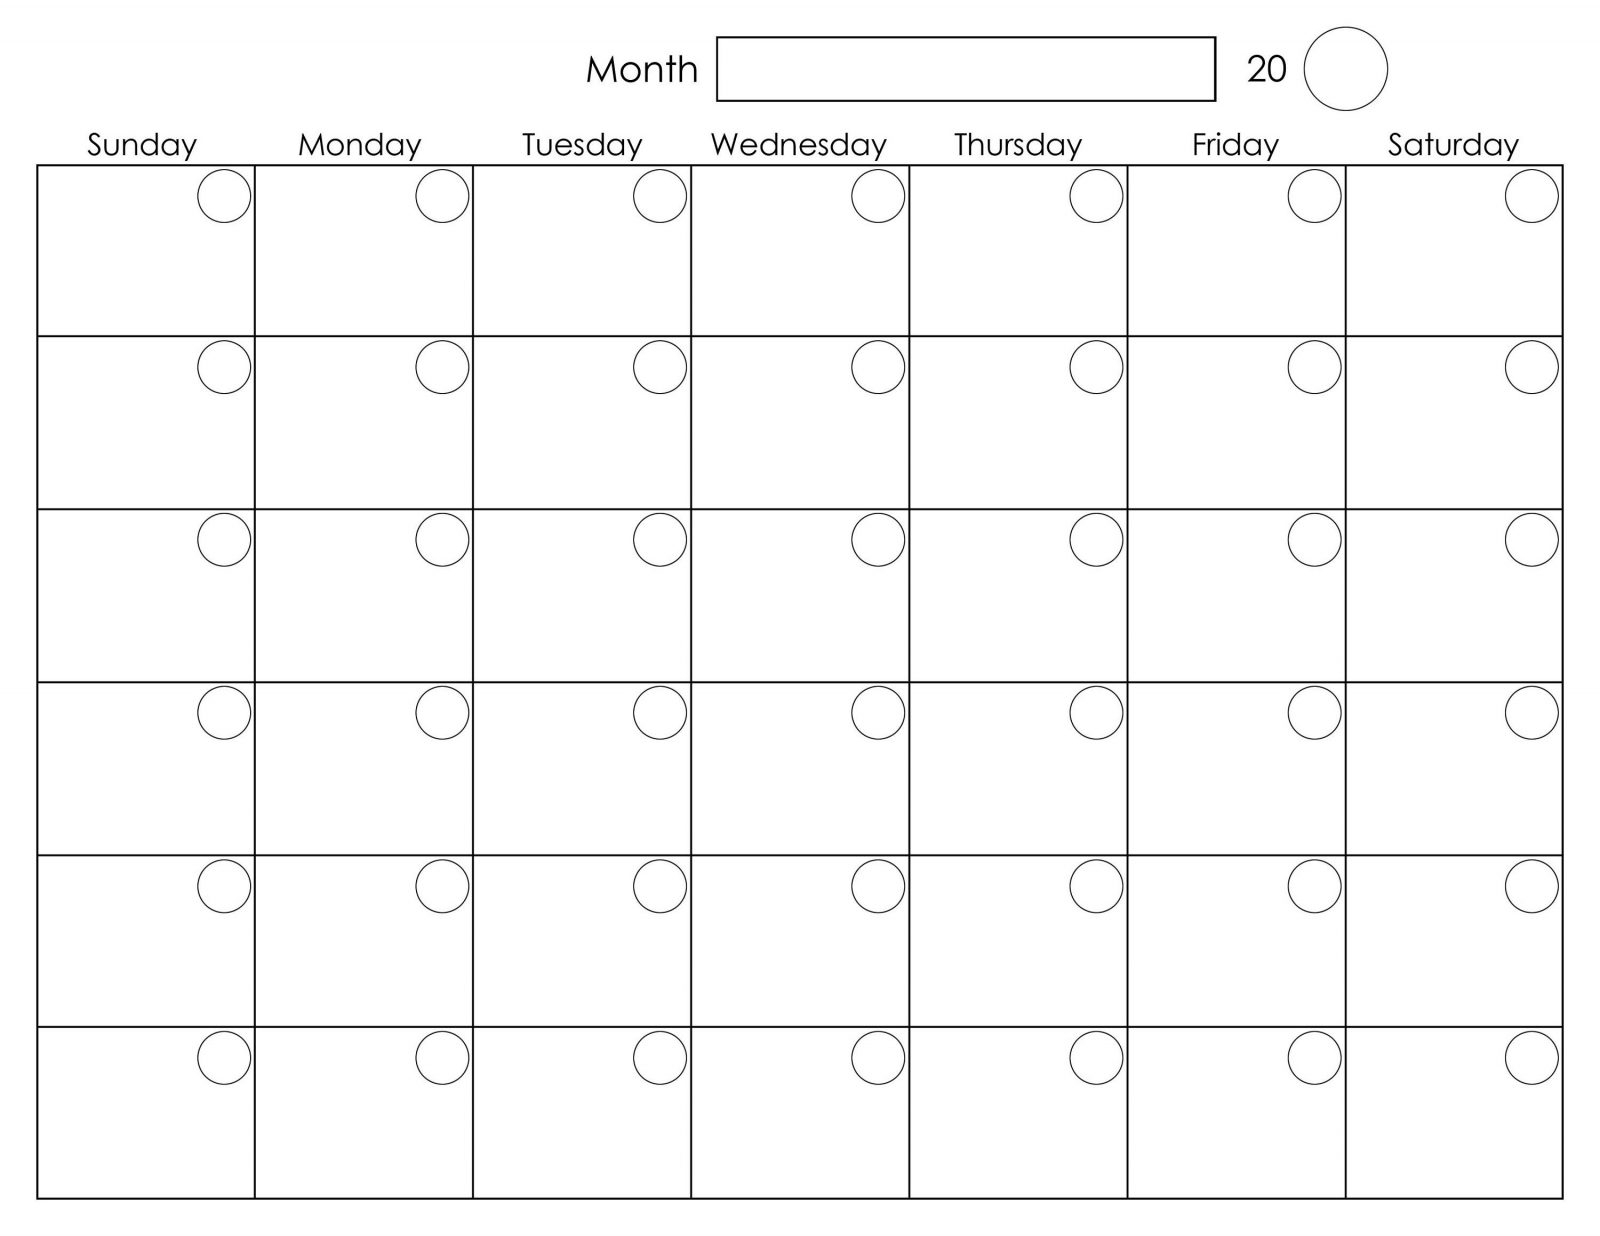 Free Blank Printable Calendar 2019 With Holidays Template